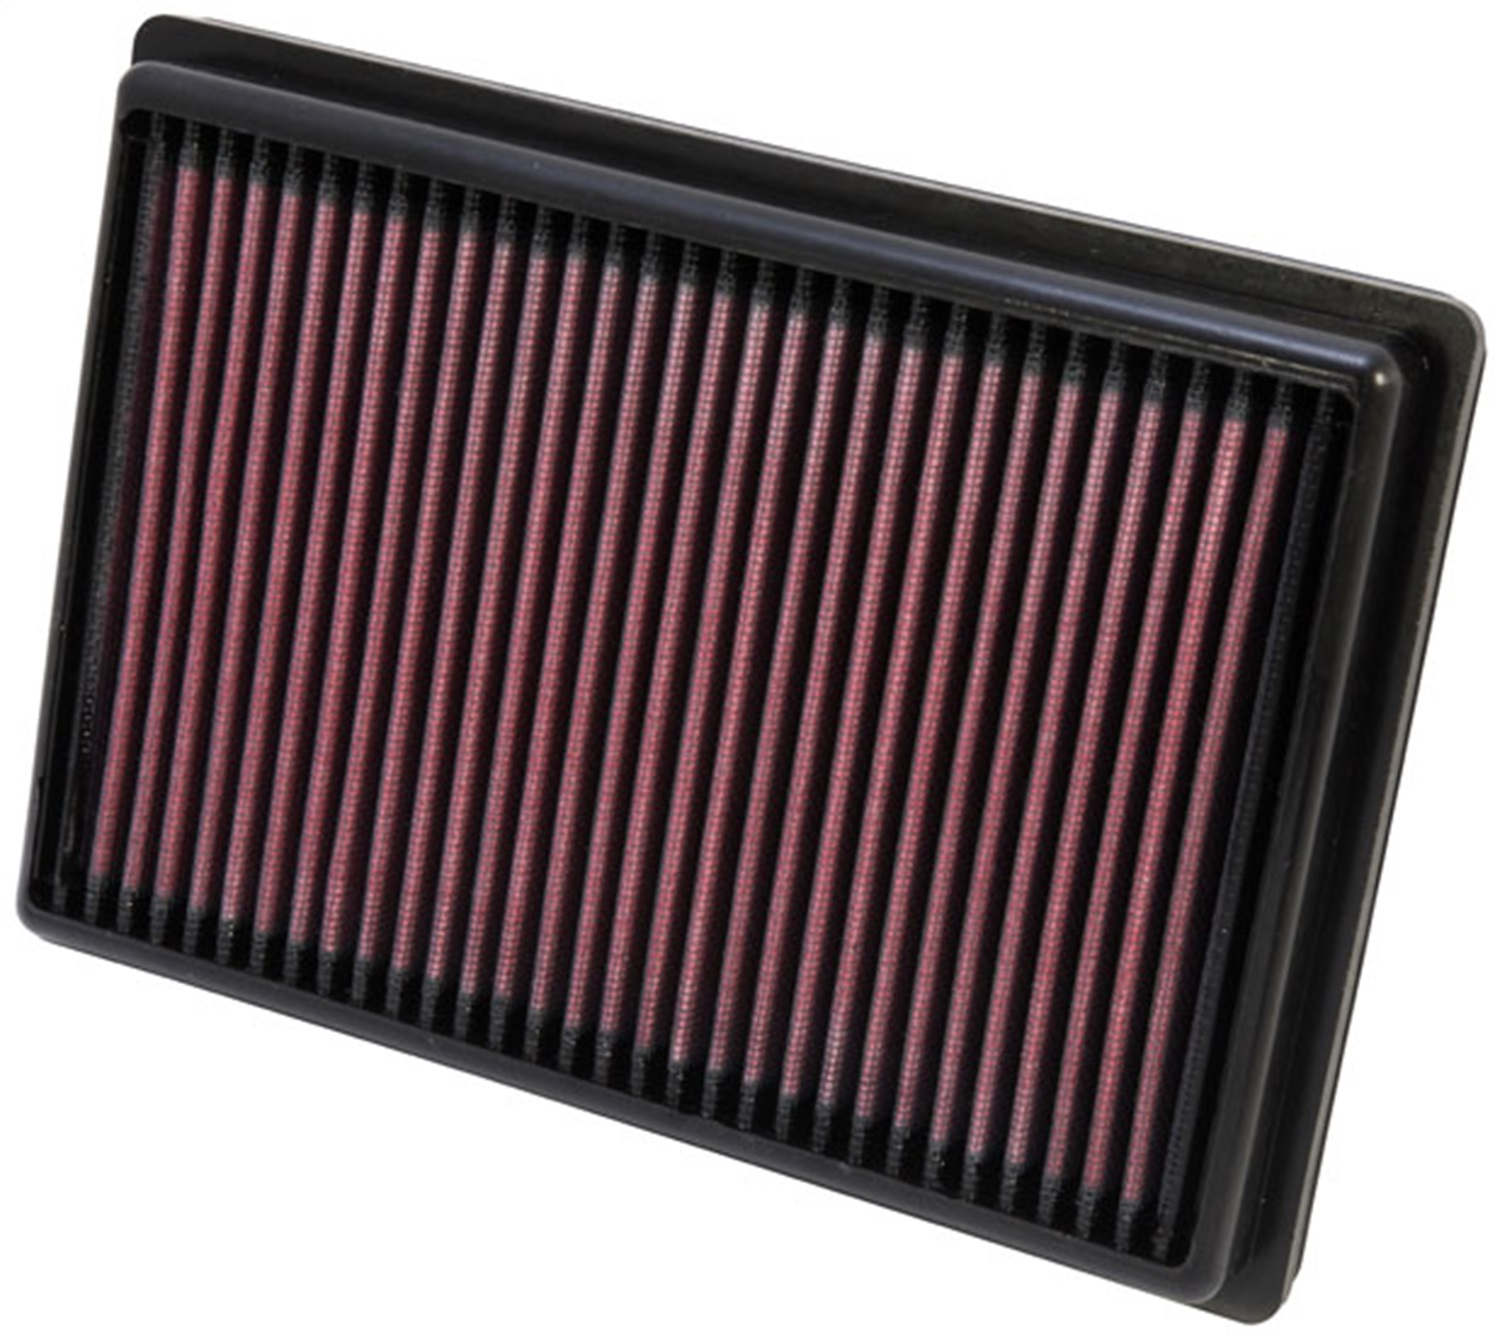 K&N Filters 33-2476 Air Filter Fits 12-15 Sonic 33-2476